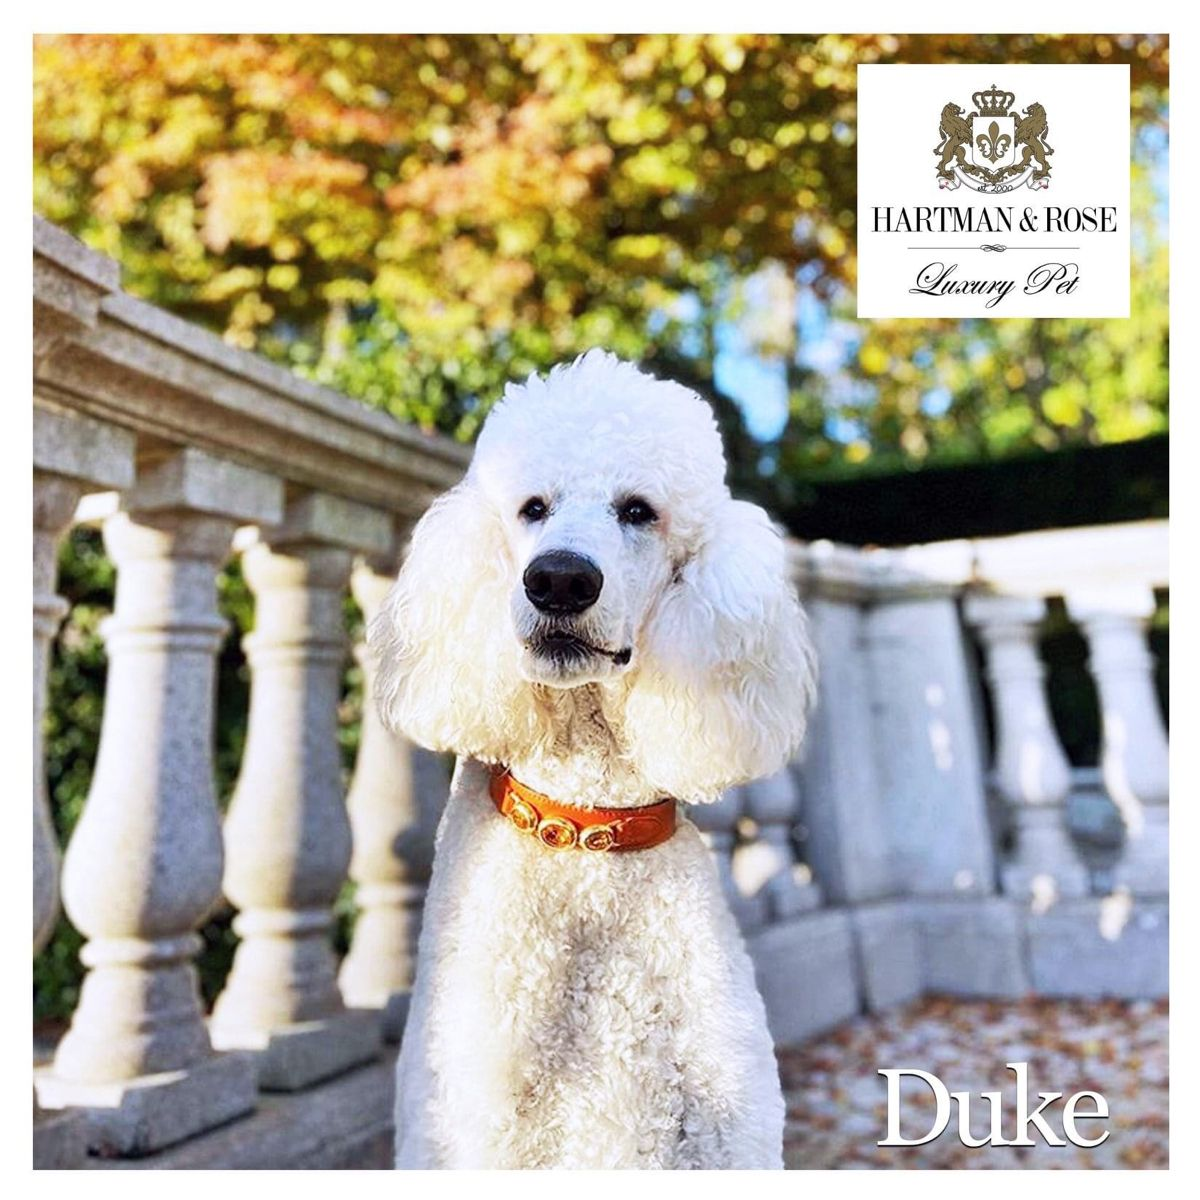 Worlds Finest Collection of Dog Collars, Leads & More... SAVE 40% promo code: ROSEBUD. www.hartmanandrose.com Duke the stunning White Standard Poodle resides in Sydney, Australia and is wearing the Regency collar in Tangarine @duke_thepoodle. #hartmanandrose @hartmanandrose